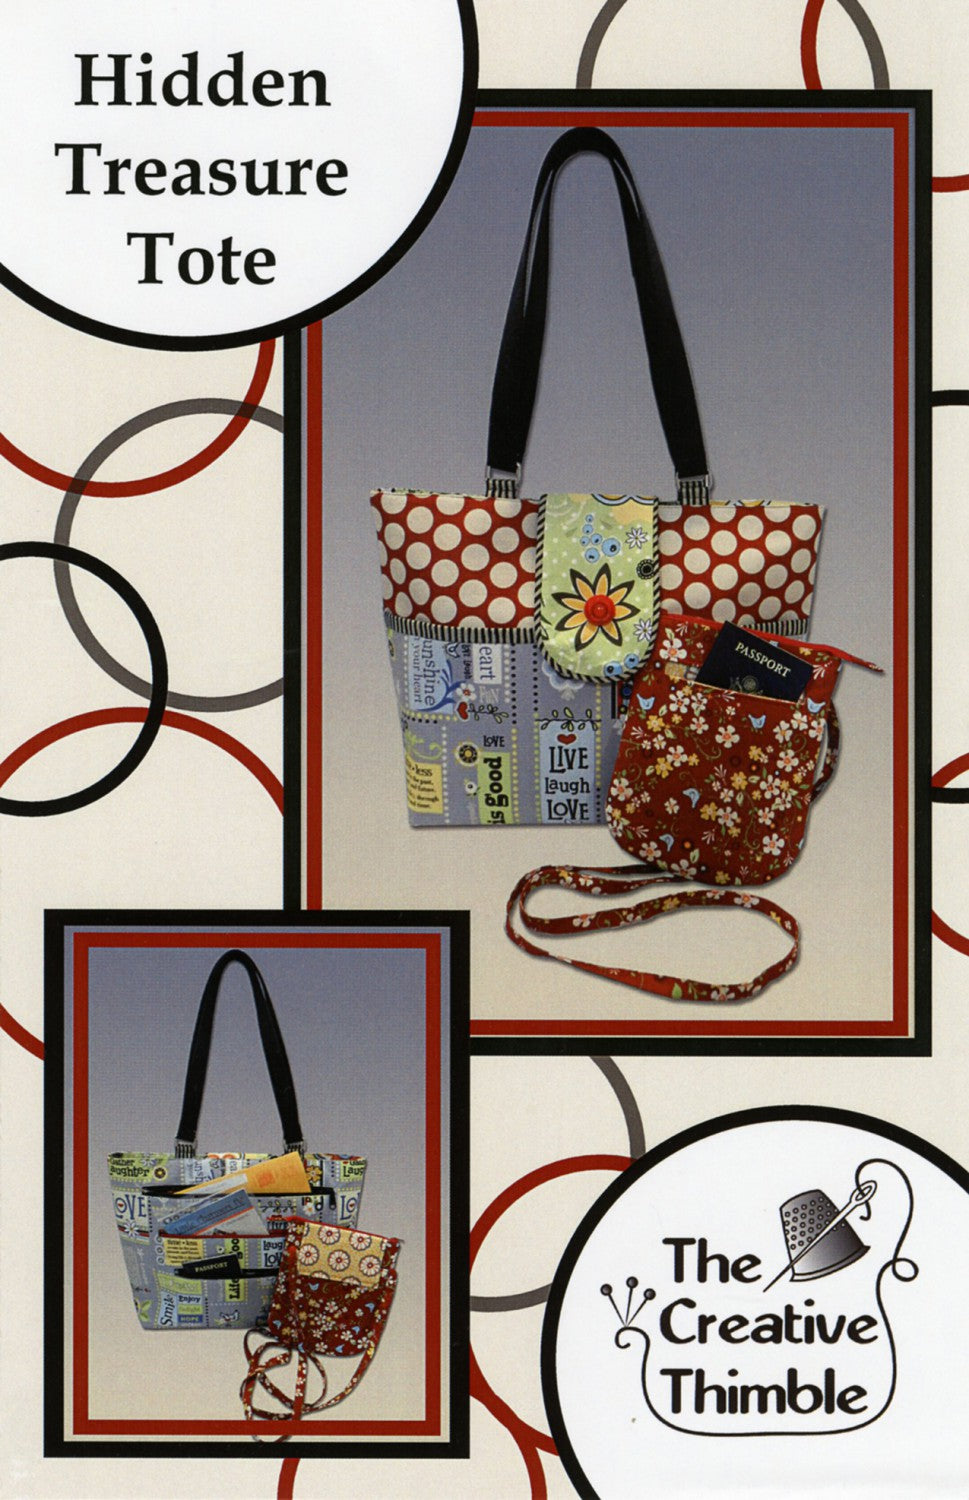 Hidden Treasure Tote